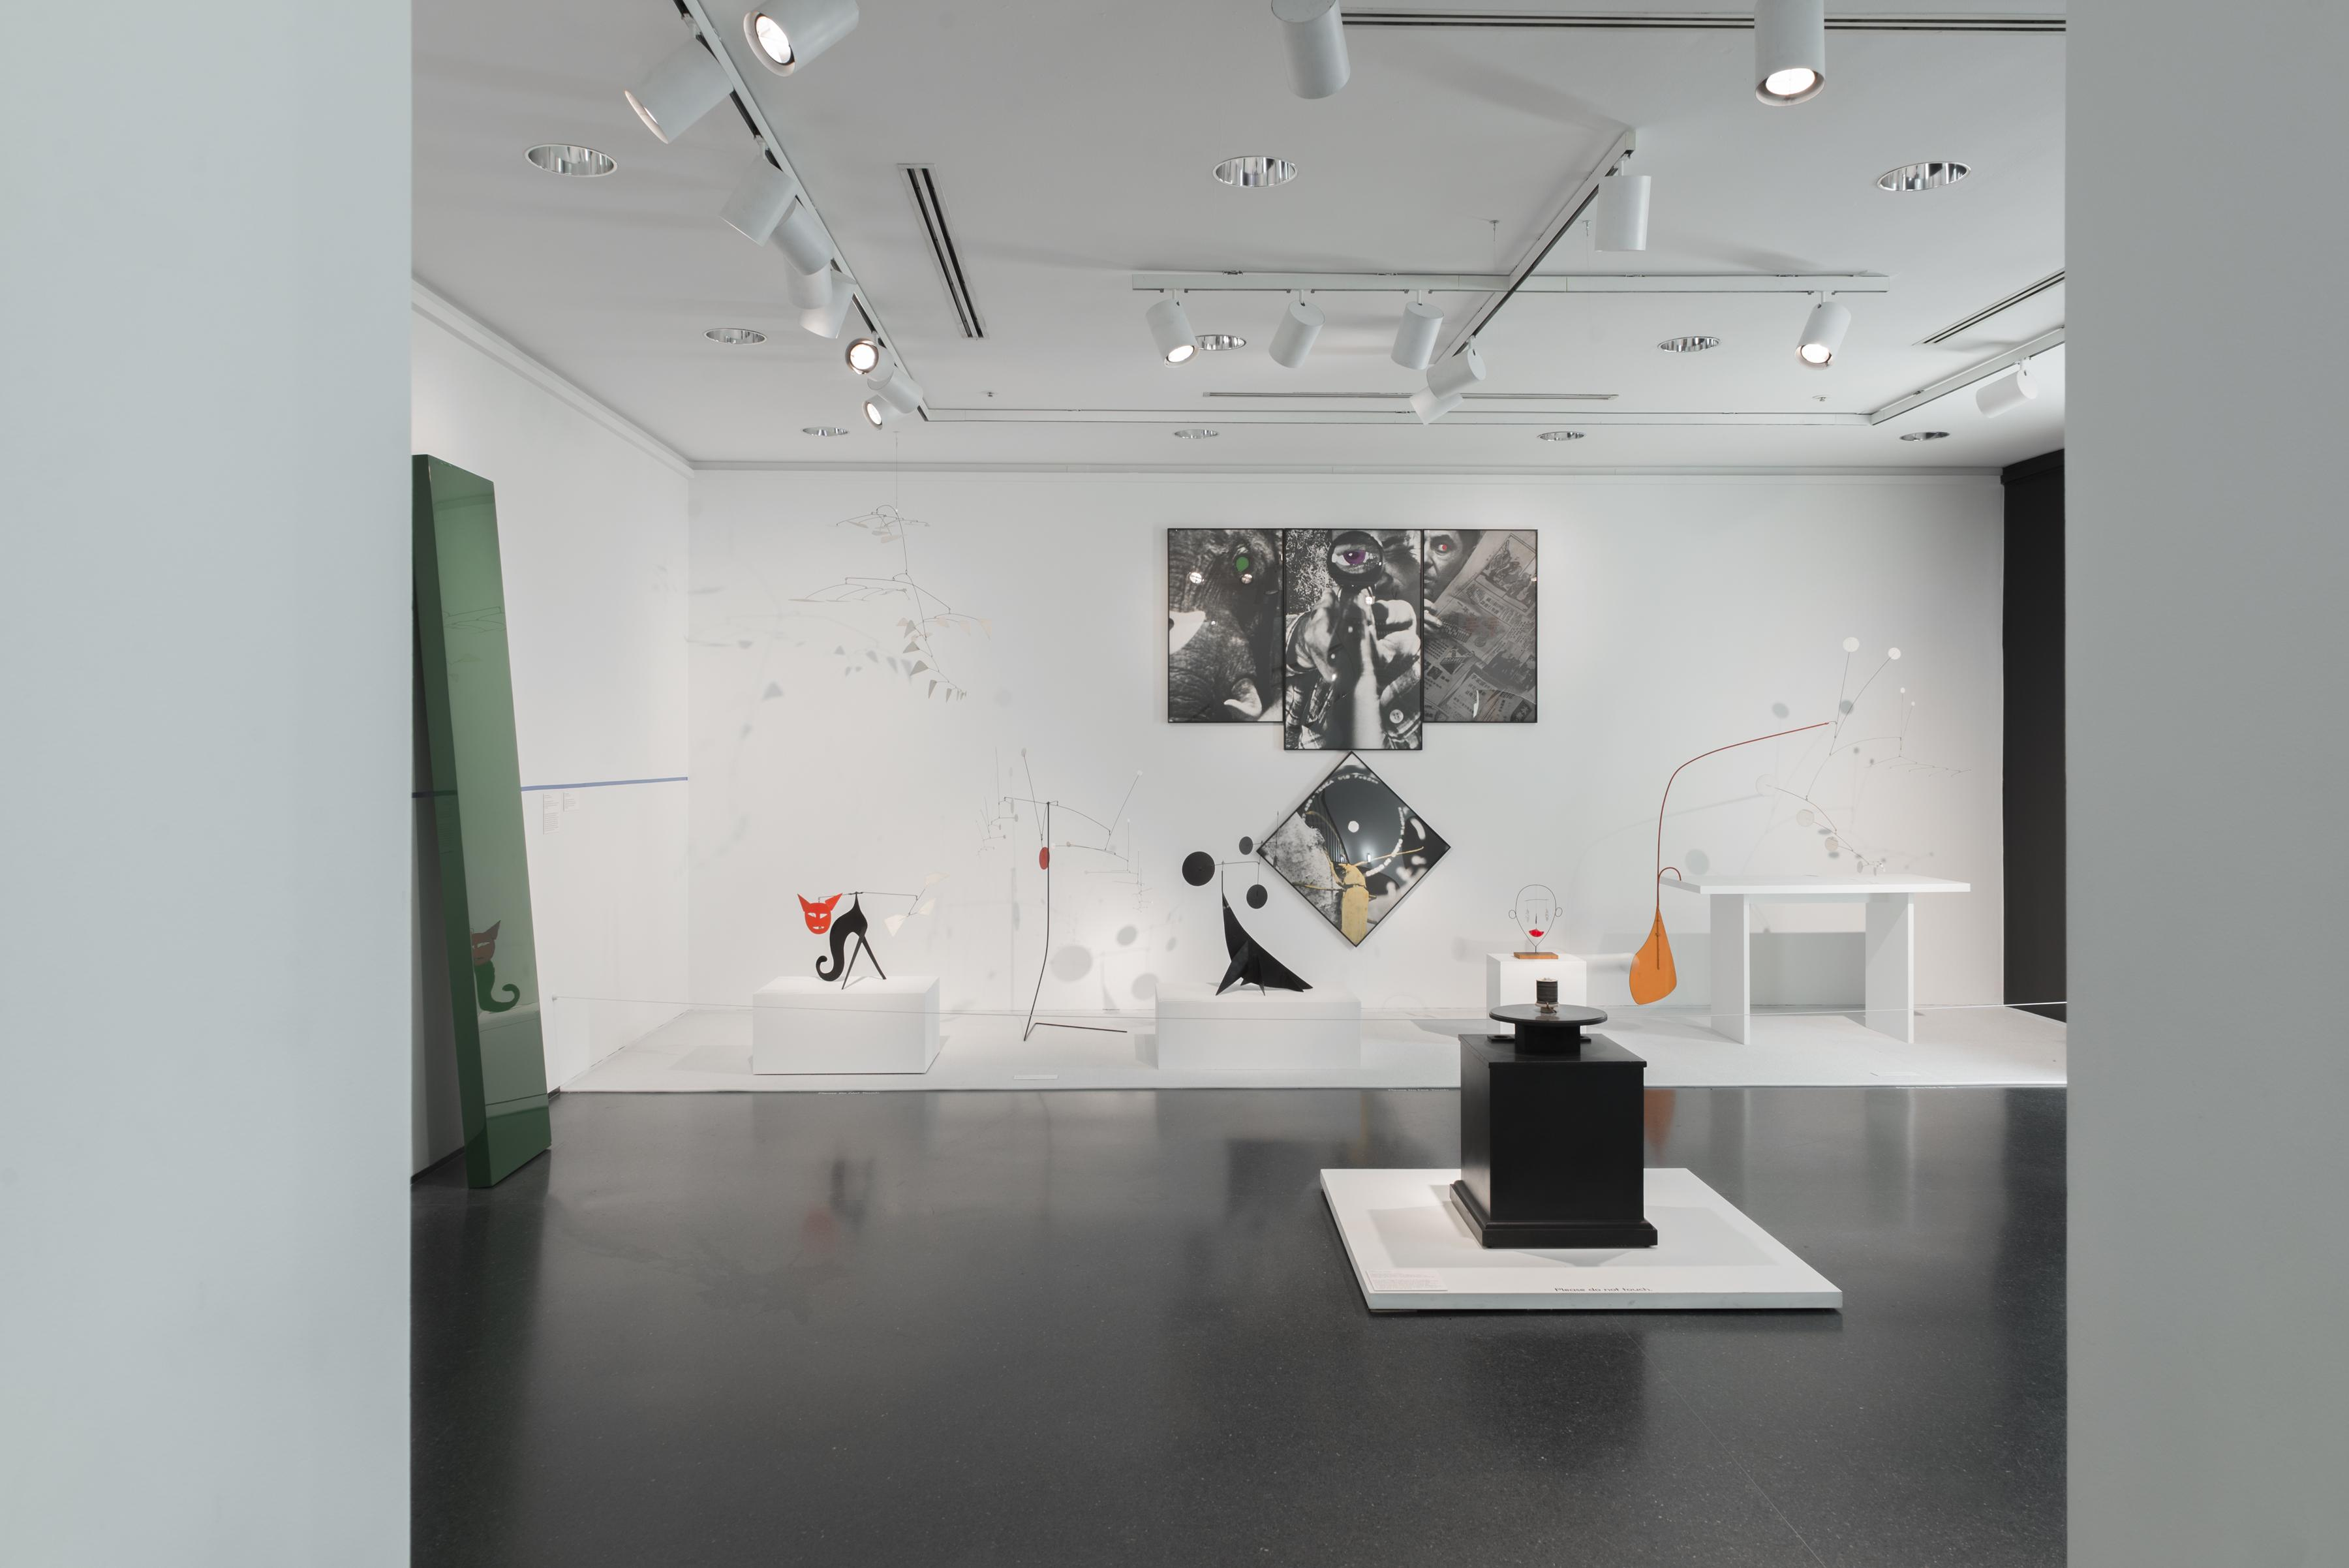 Several mobile sculptures in various shapes rest on pedestals or hang from the ceiling in front of a large multipaneled black-and-white photograph in a white-walled gallery.